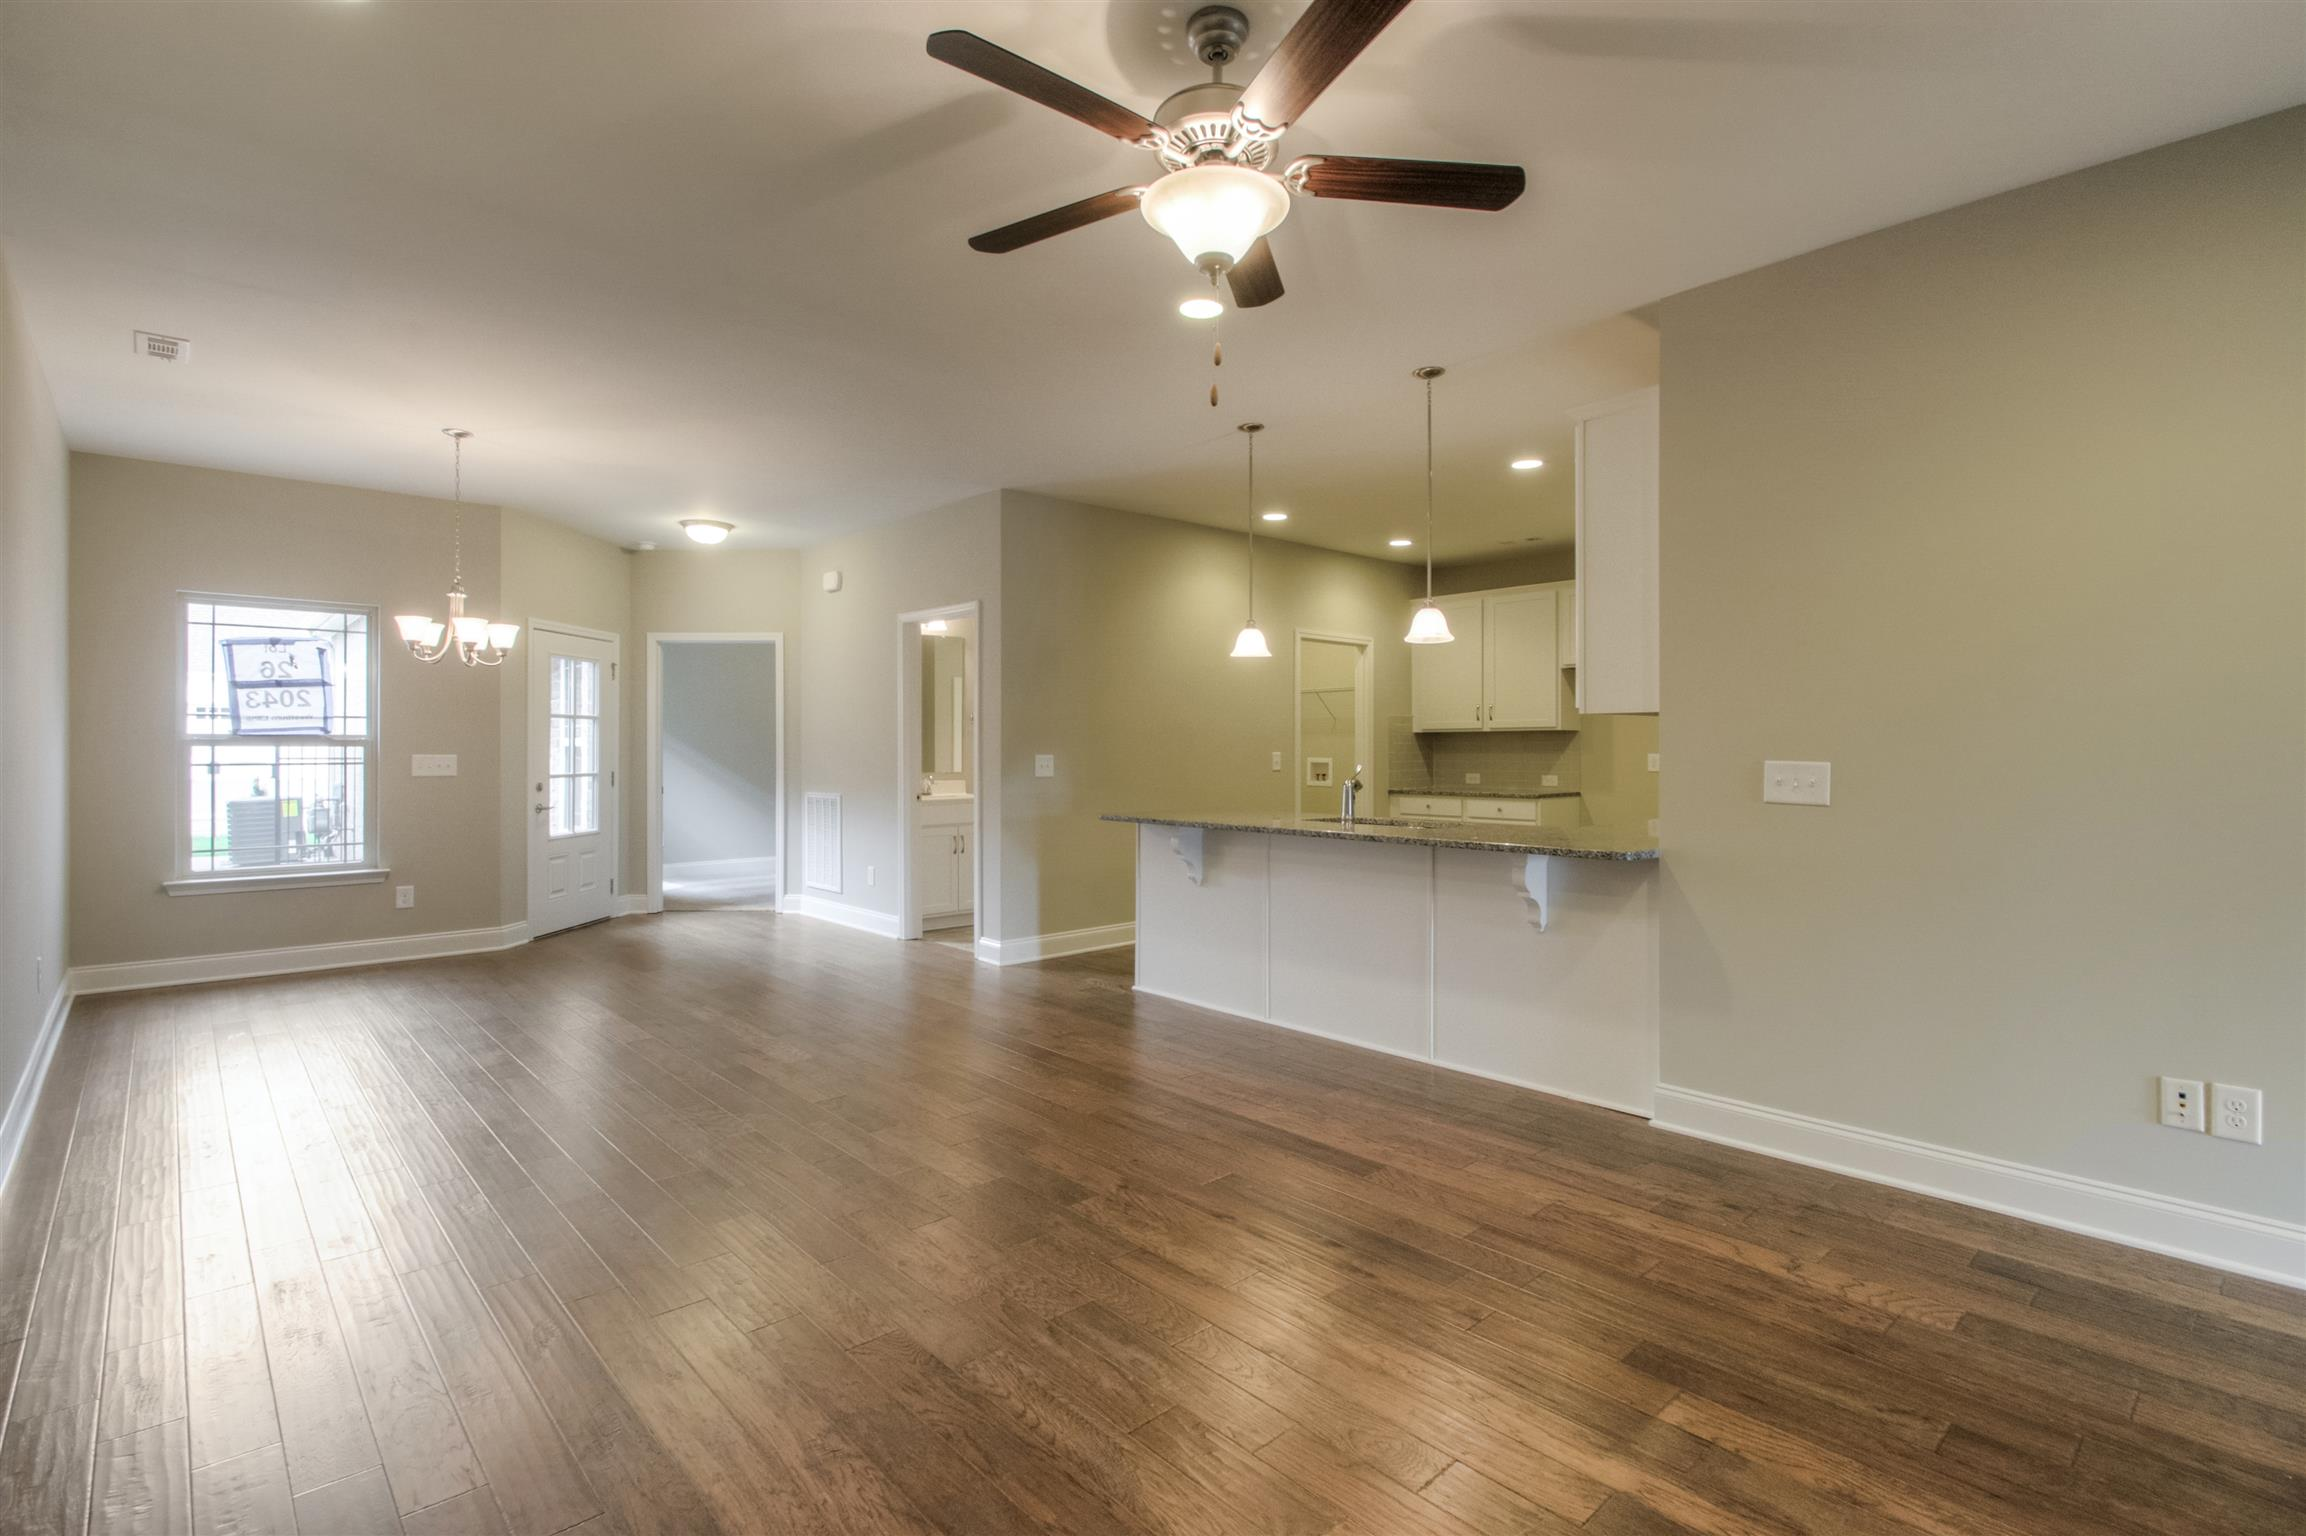 424 Lively Way #72, Nolensville, Tennessee